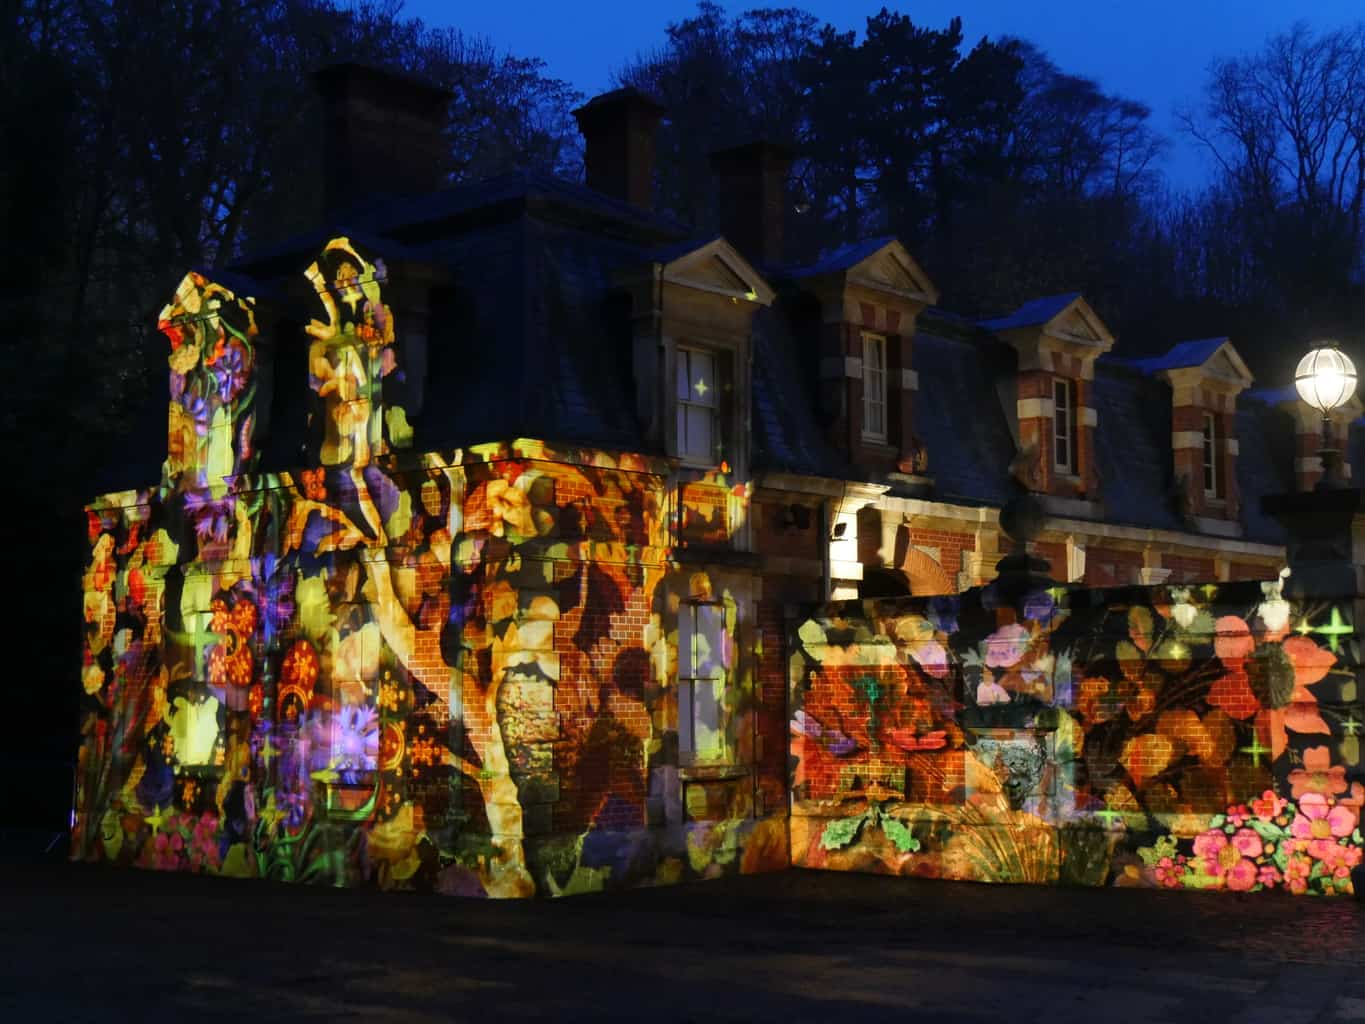 A projection show on a building at Waddesdon Manor Christmas